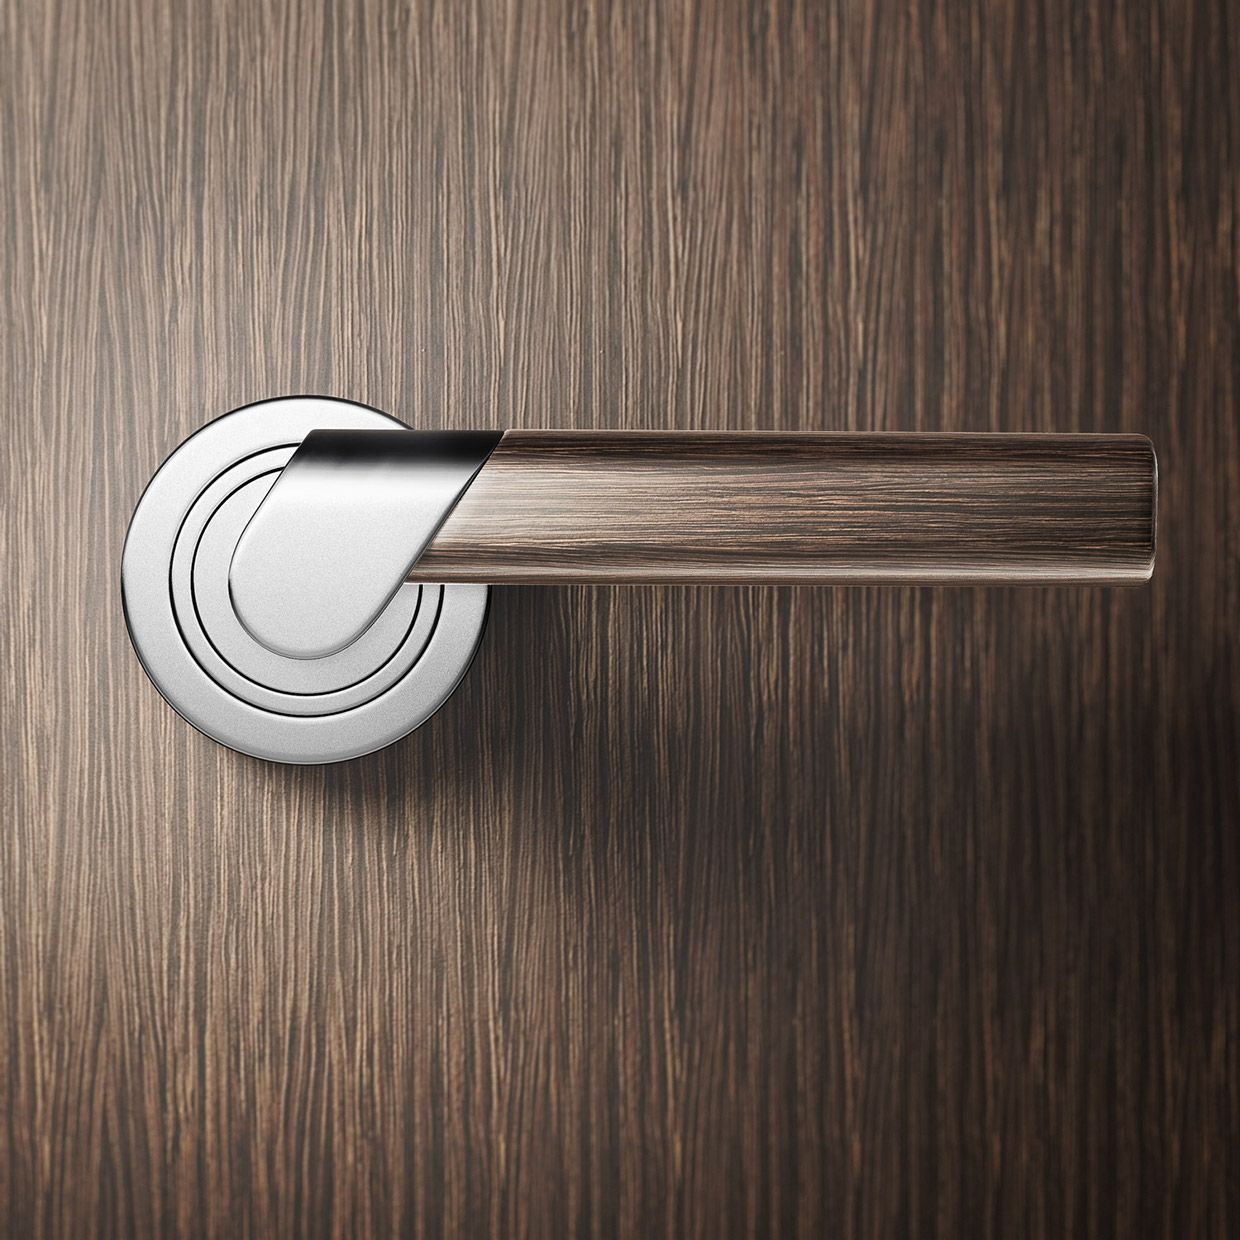 SLICE   door handle on Behance. SLICE   door handle on Behance   Interior   Pinterest   Door